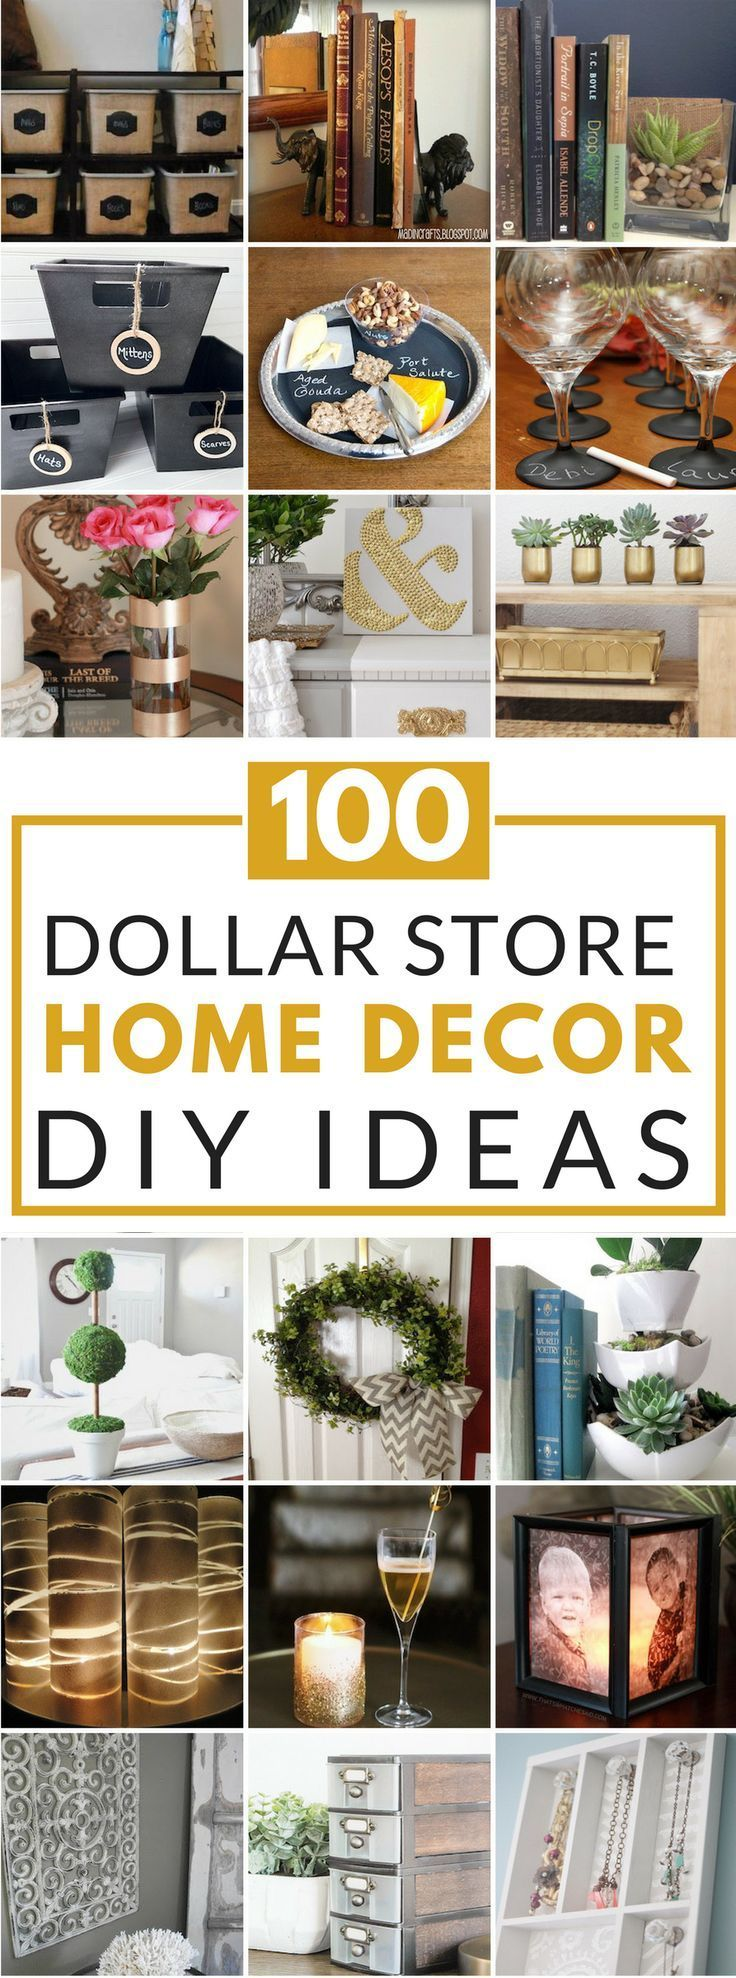 100 dollar store diy home decor ideas - Home Decor Stores